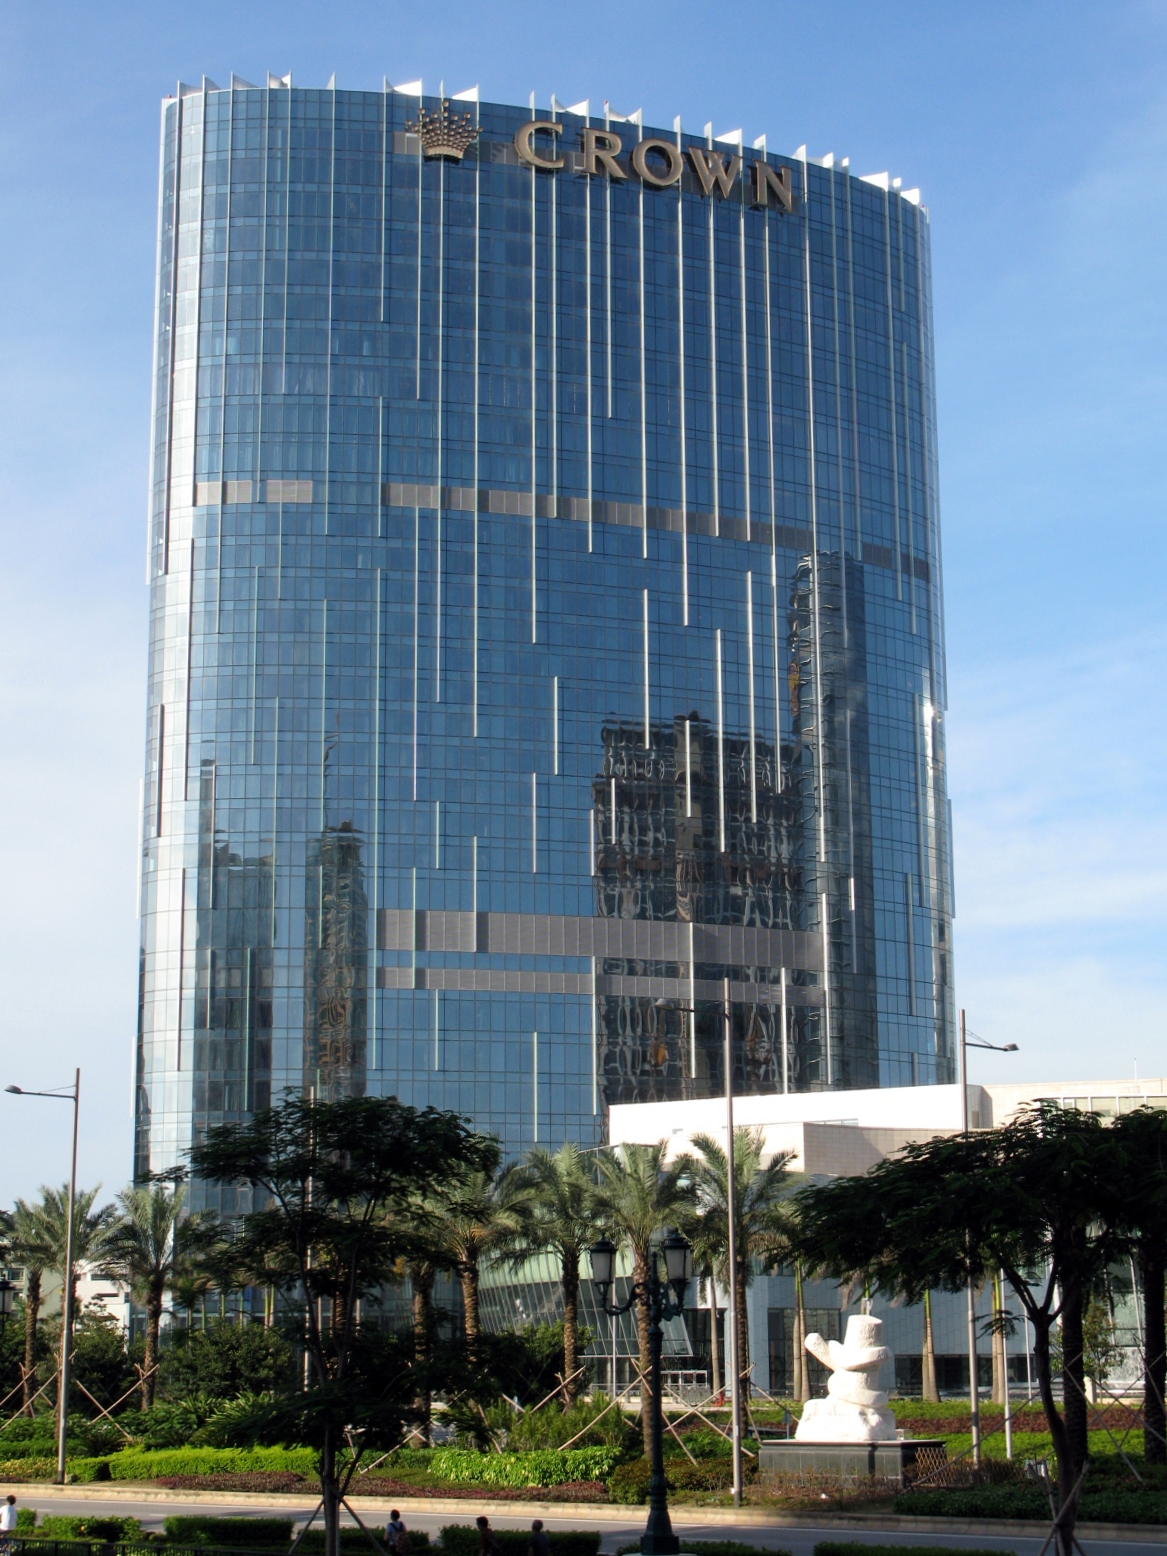 Une Hotel Crown Towers — Wikipédia